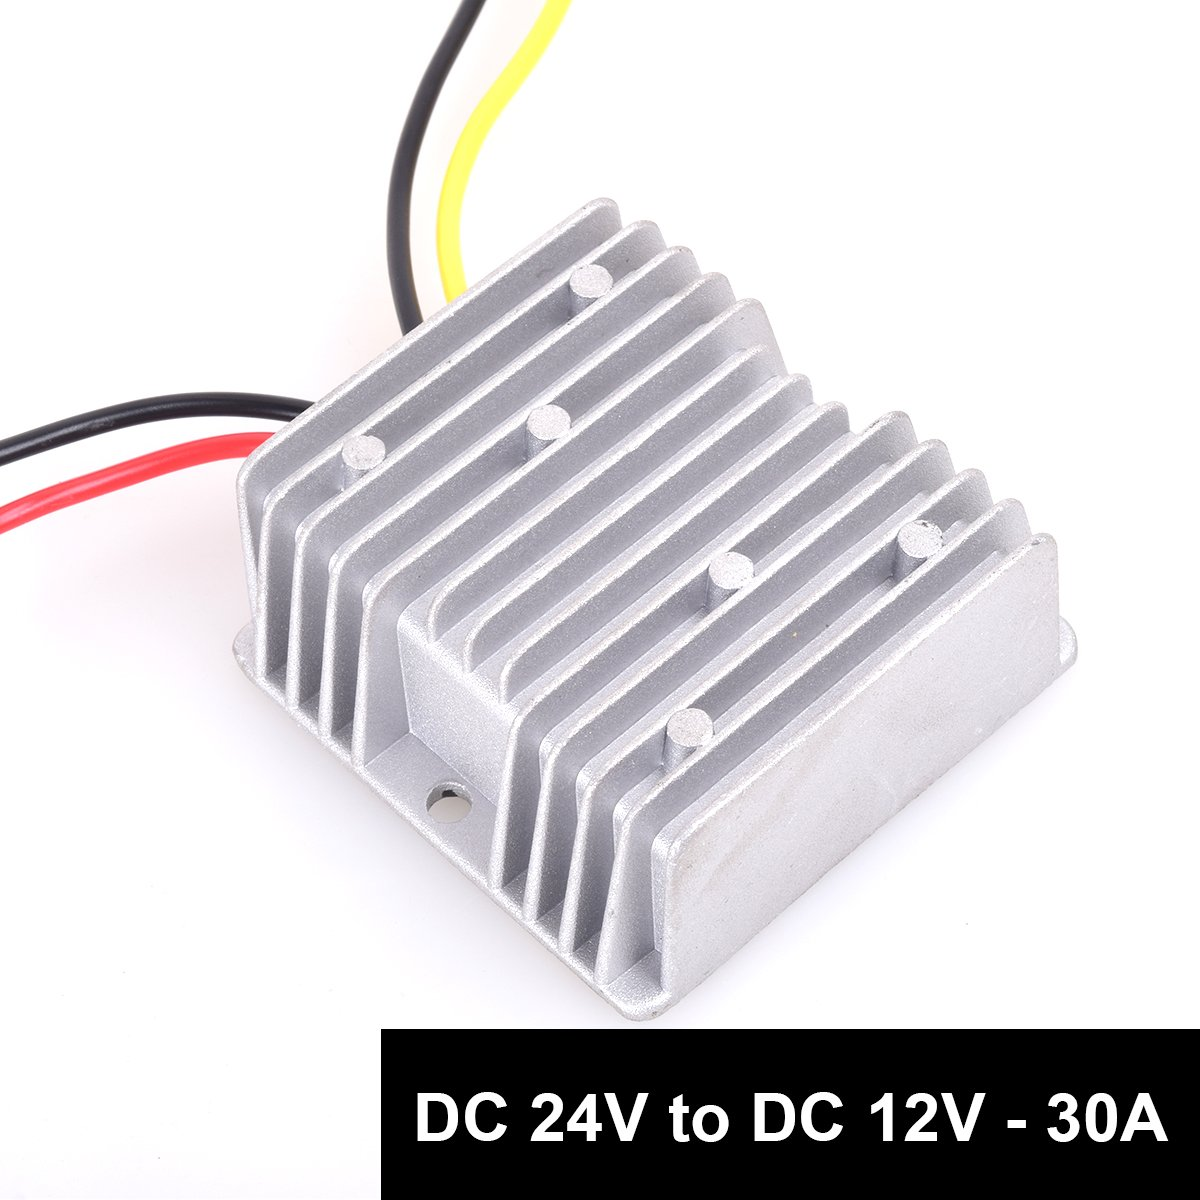 DC 24v to DC 12v Step Down 30A 360W Heavy Duty Truck Car Power Supply Adapter Converter Reducer Regulator for Auto Car Truck Vehicle Boat Solar System etc.(DC15-40V Inputs)